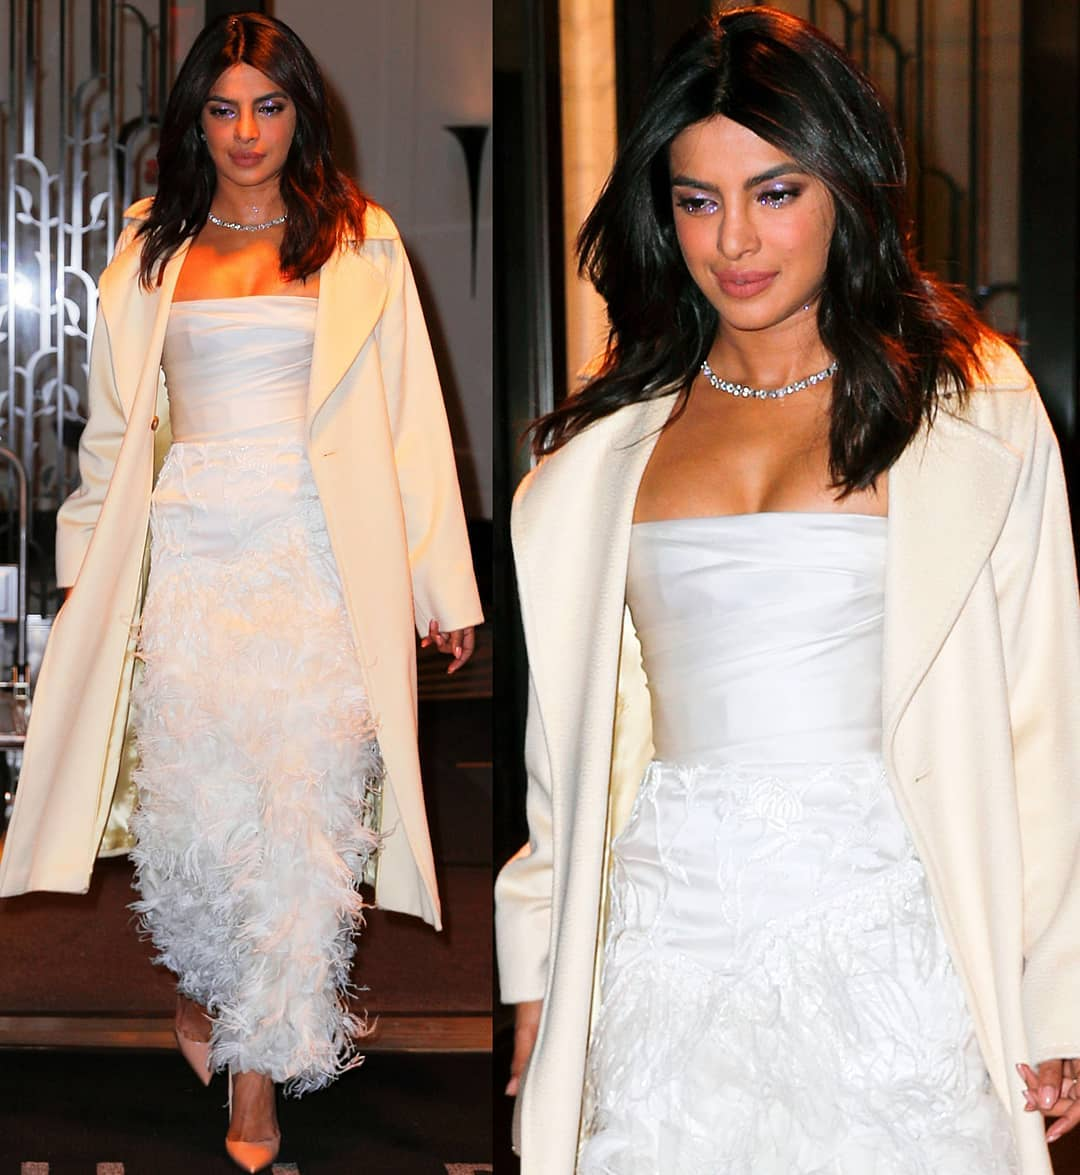 7-priyanka-chopra-bridal-shower-at-tiffany